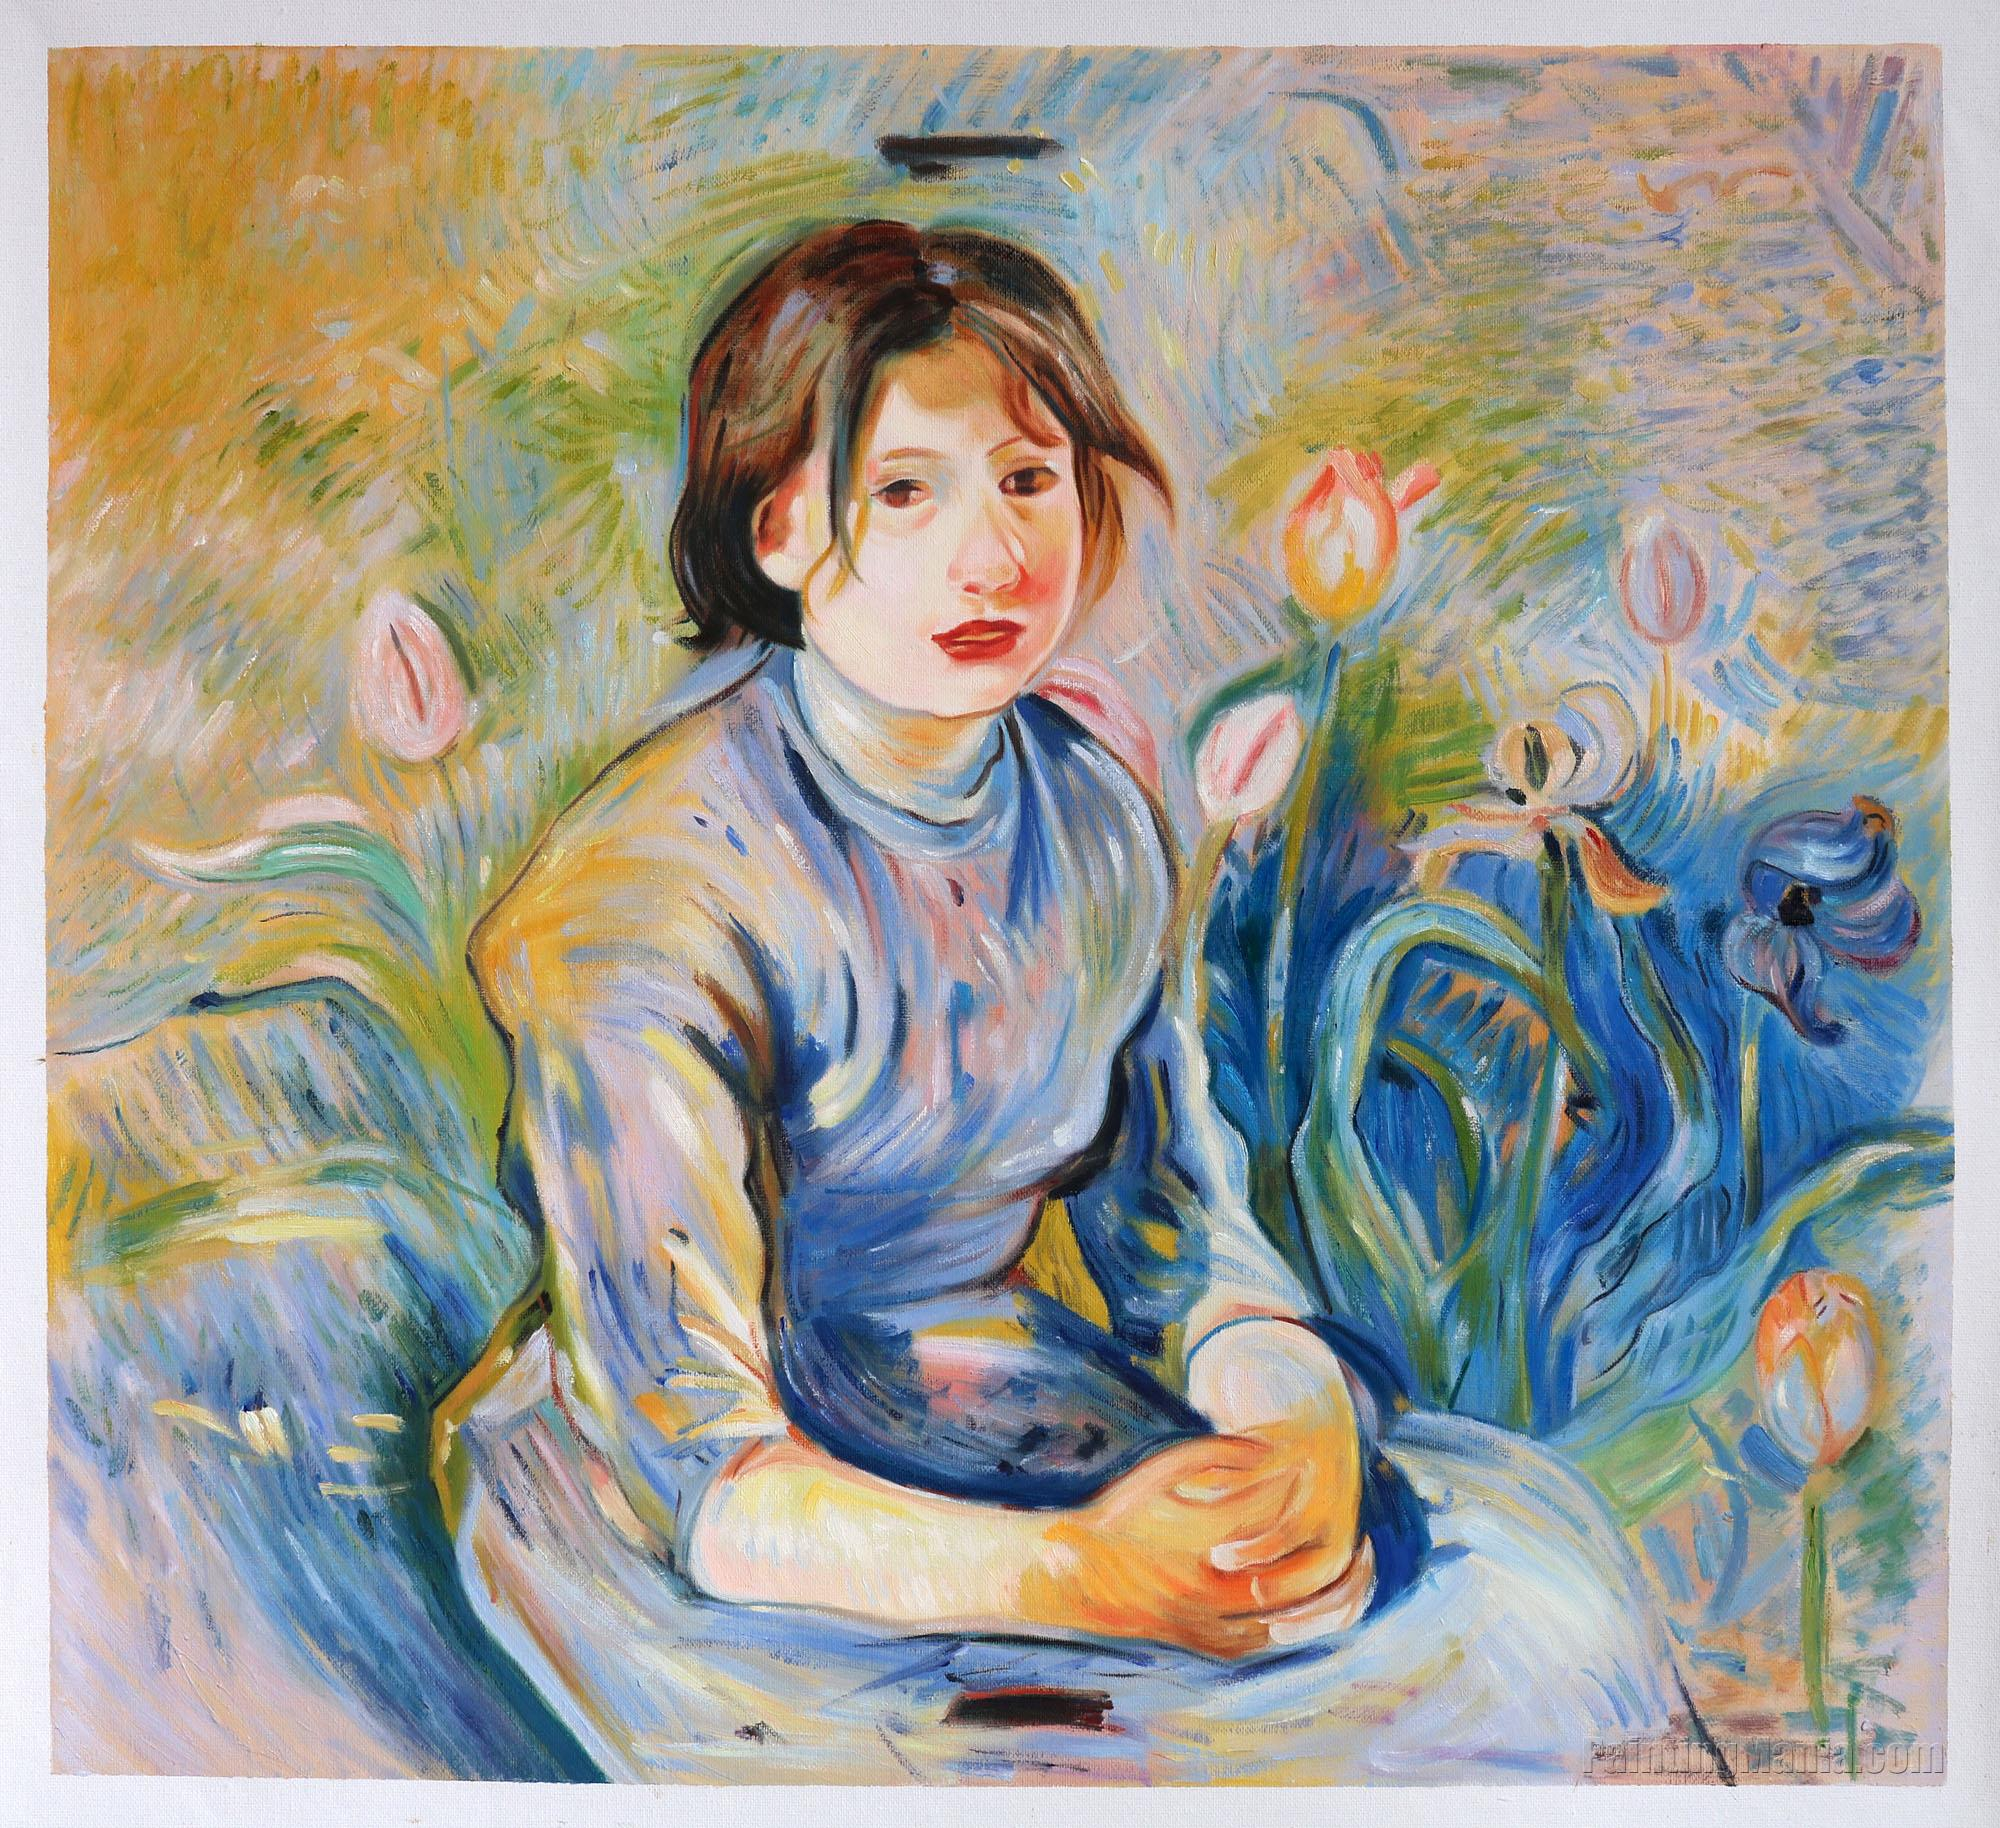 Peasant Girl among Tulips